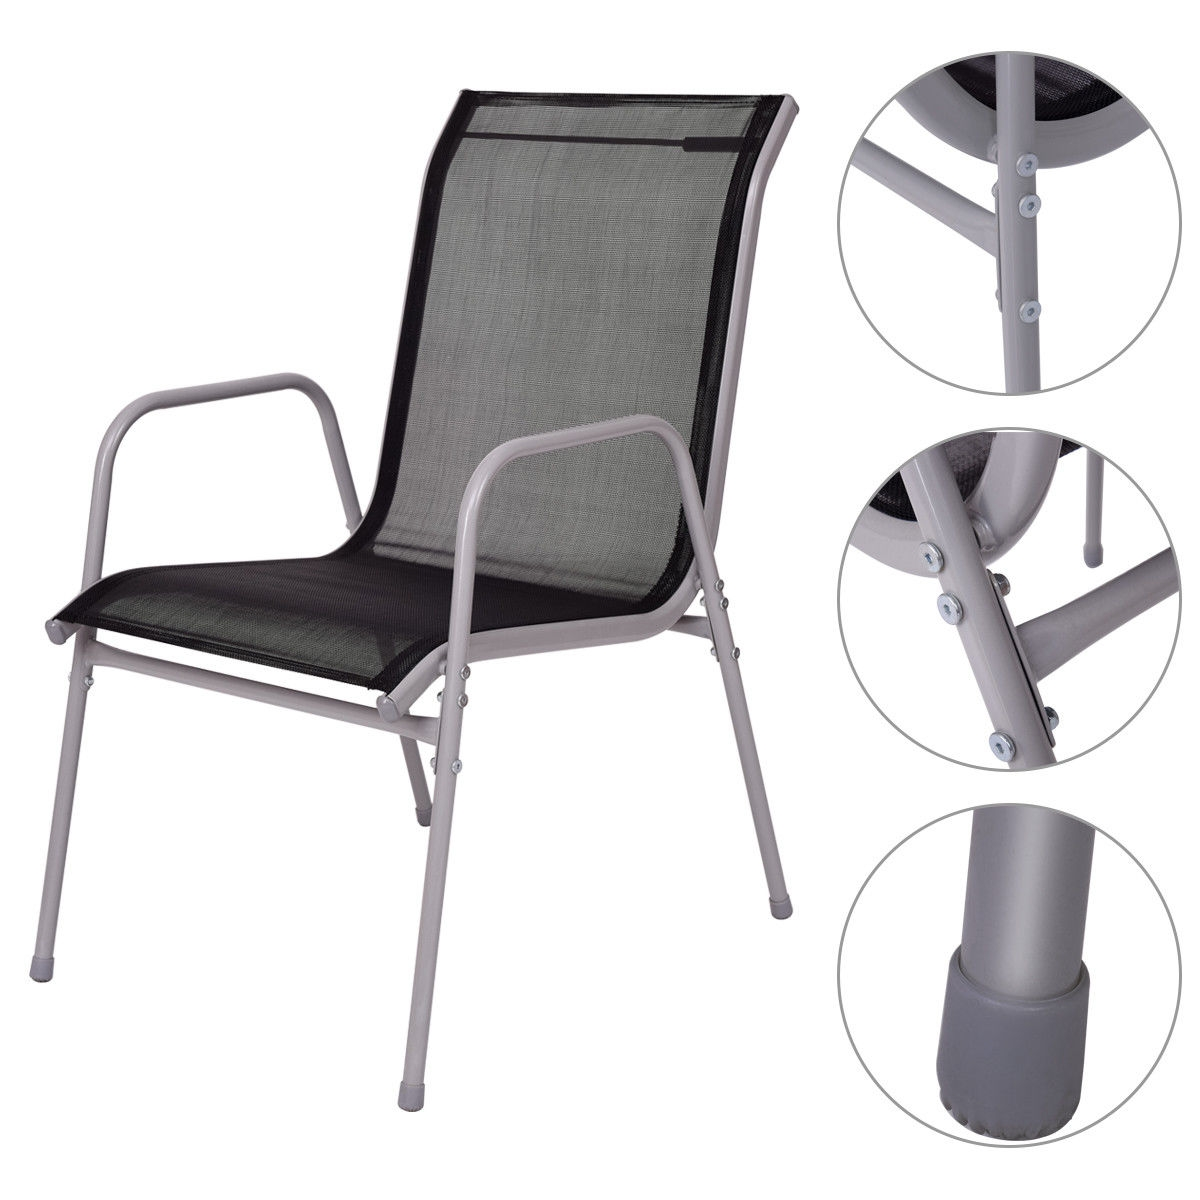 7 Piece Patio Furniture Steel Table Chairs Dining Set